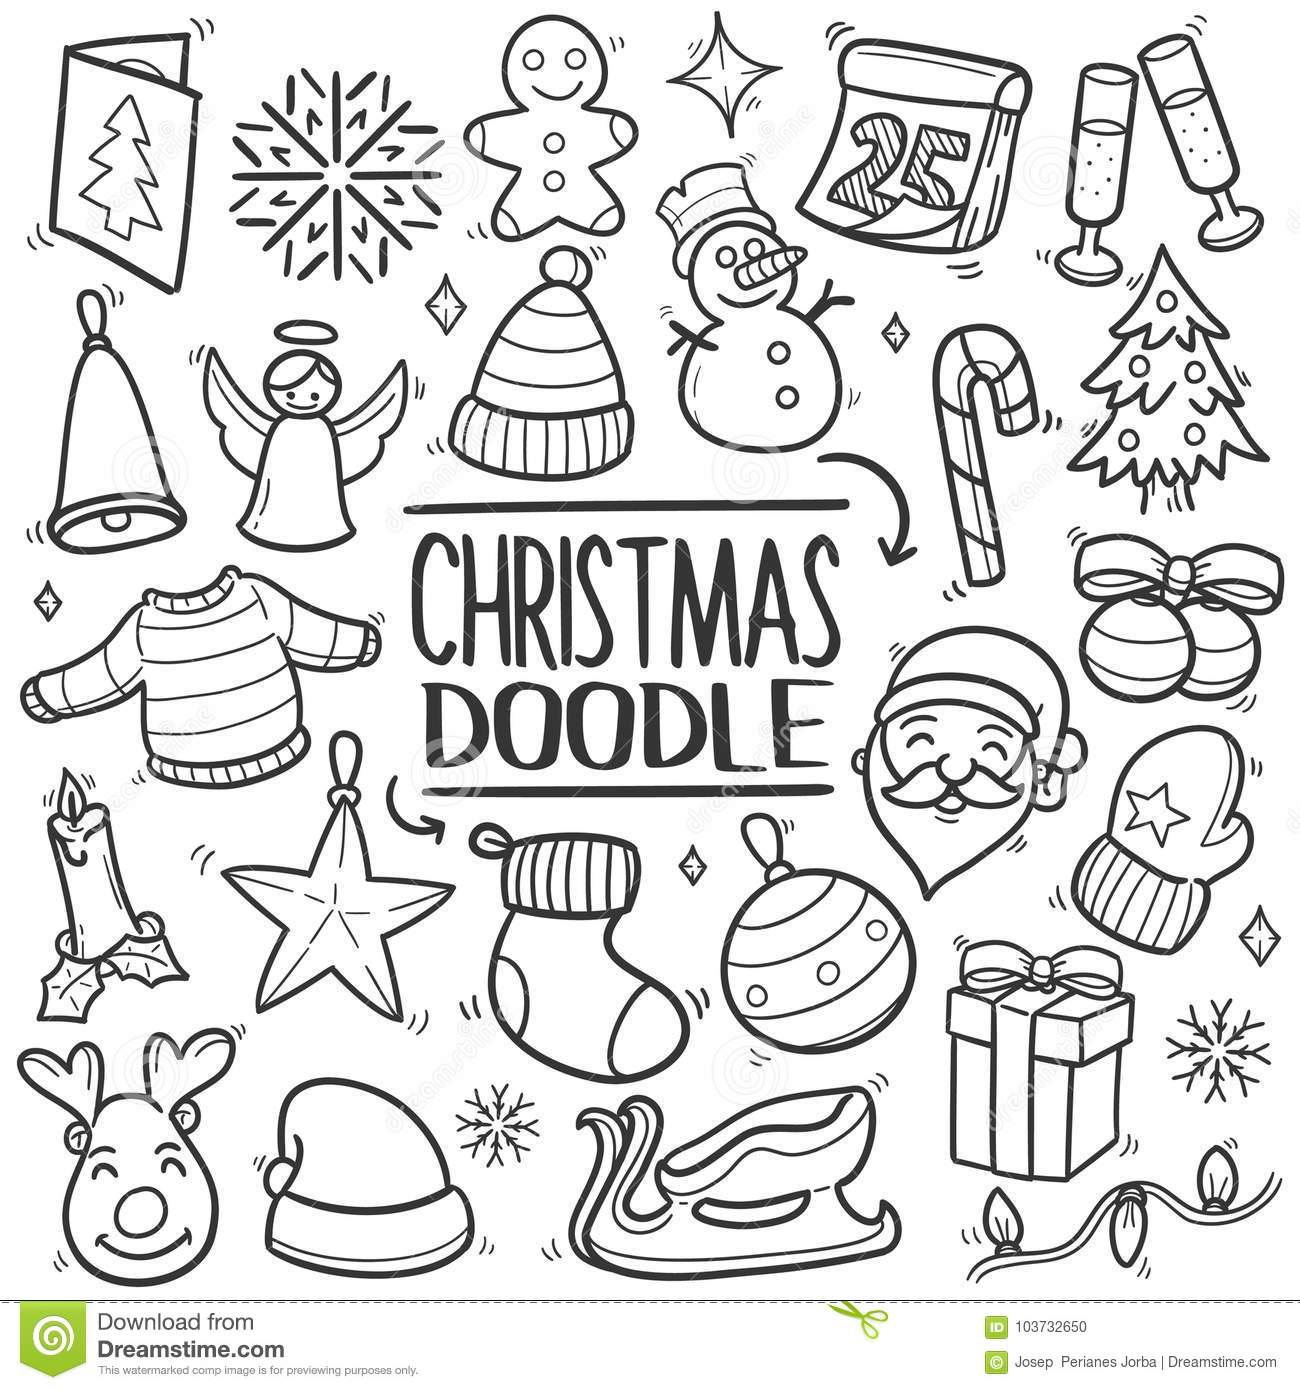 Handdrawn Garland Clip Art Doodles And Illustration In